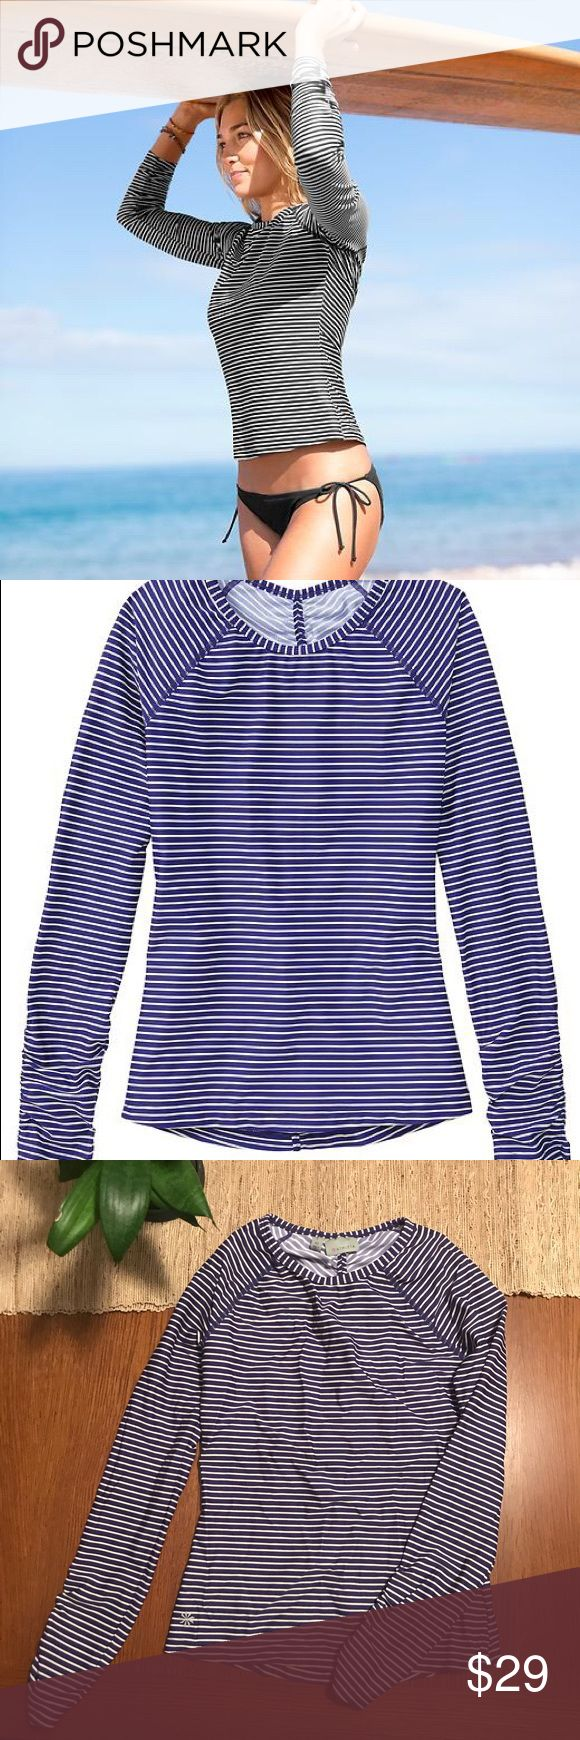 Athleta Gardenia Grove Rashguard, Blue Stripe, XS Sold Out! Gardenia Grove Rashguard, Amalfi Blue Stripe - Chic blue and white stripes jazz up the good looks of this performance rashguard that protects your skin from board rash. Fun, sporty top to get you ready for the beach! Gathering on back and sleeves. Cover photo shows same top in black and white. Athleta Swim